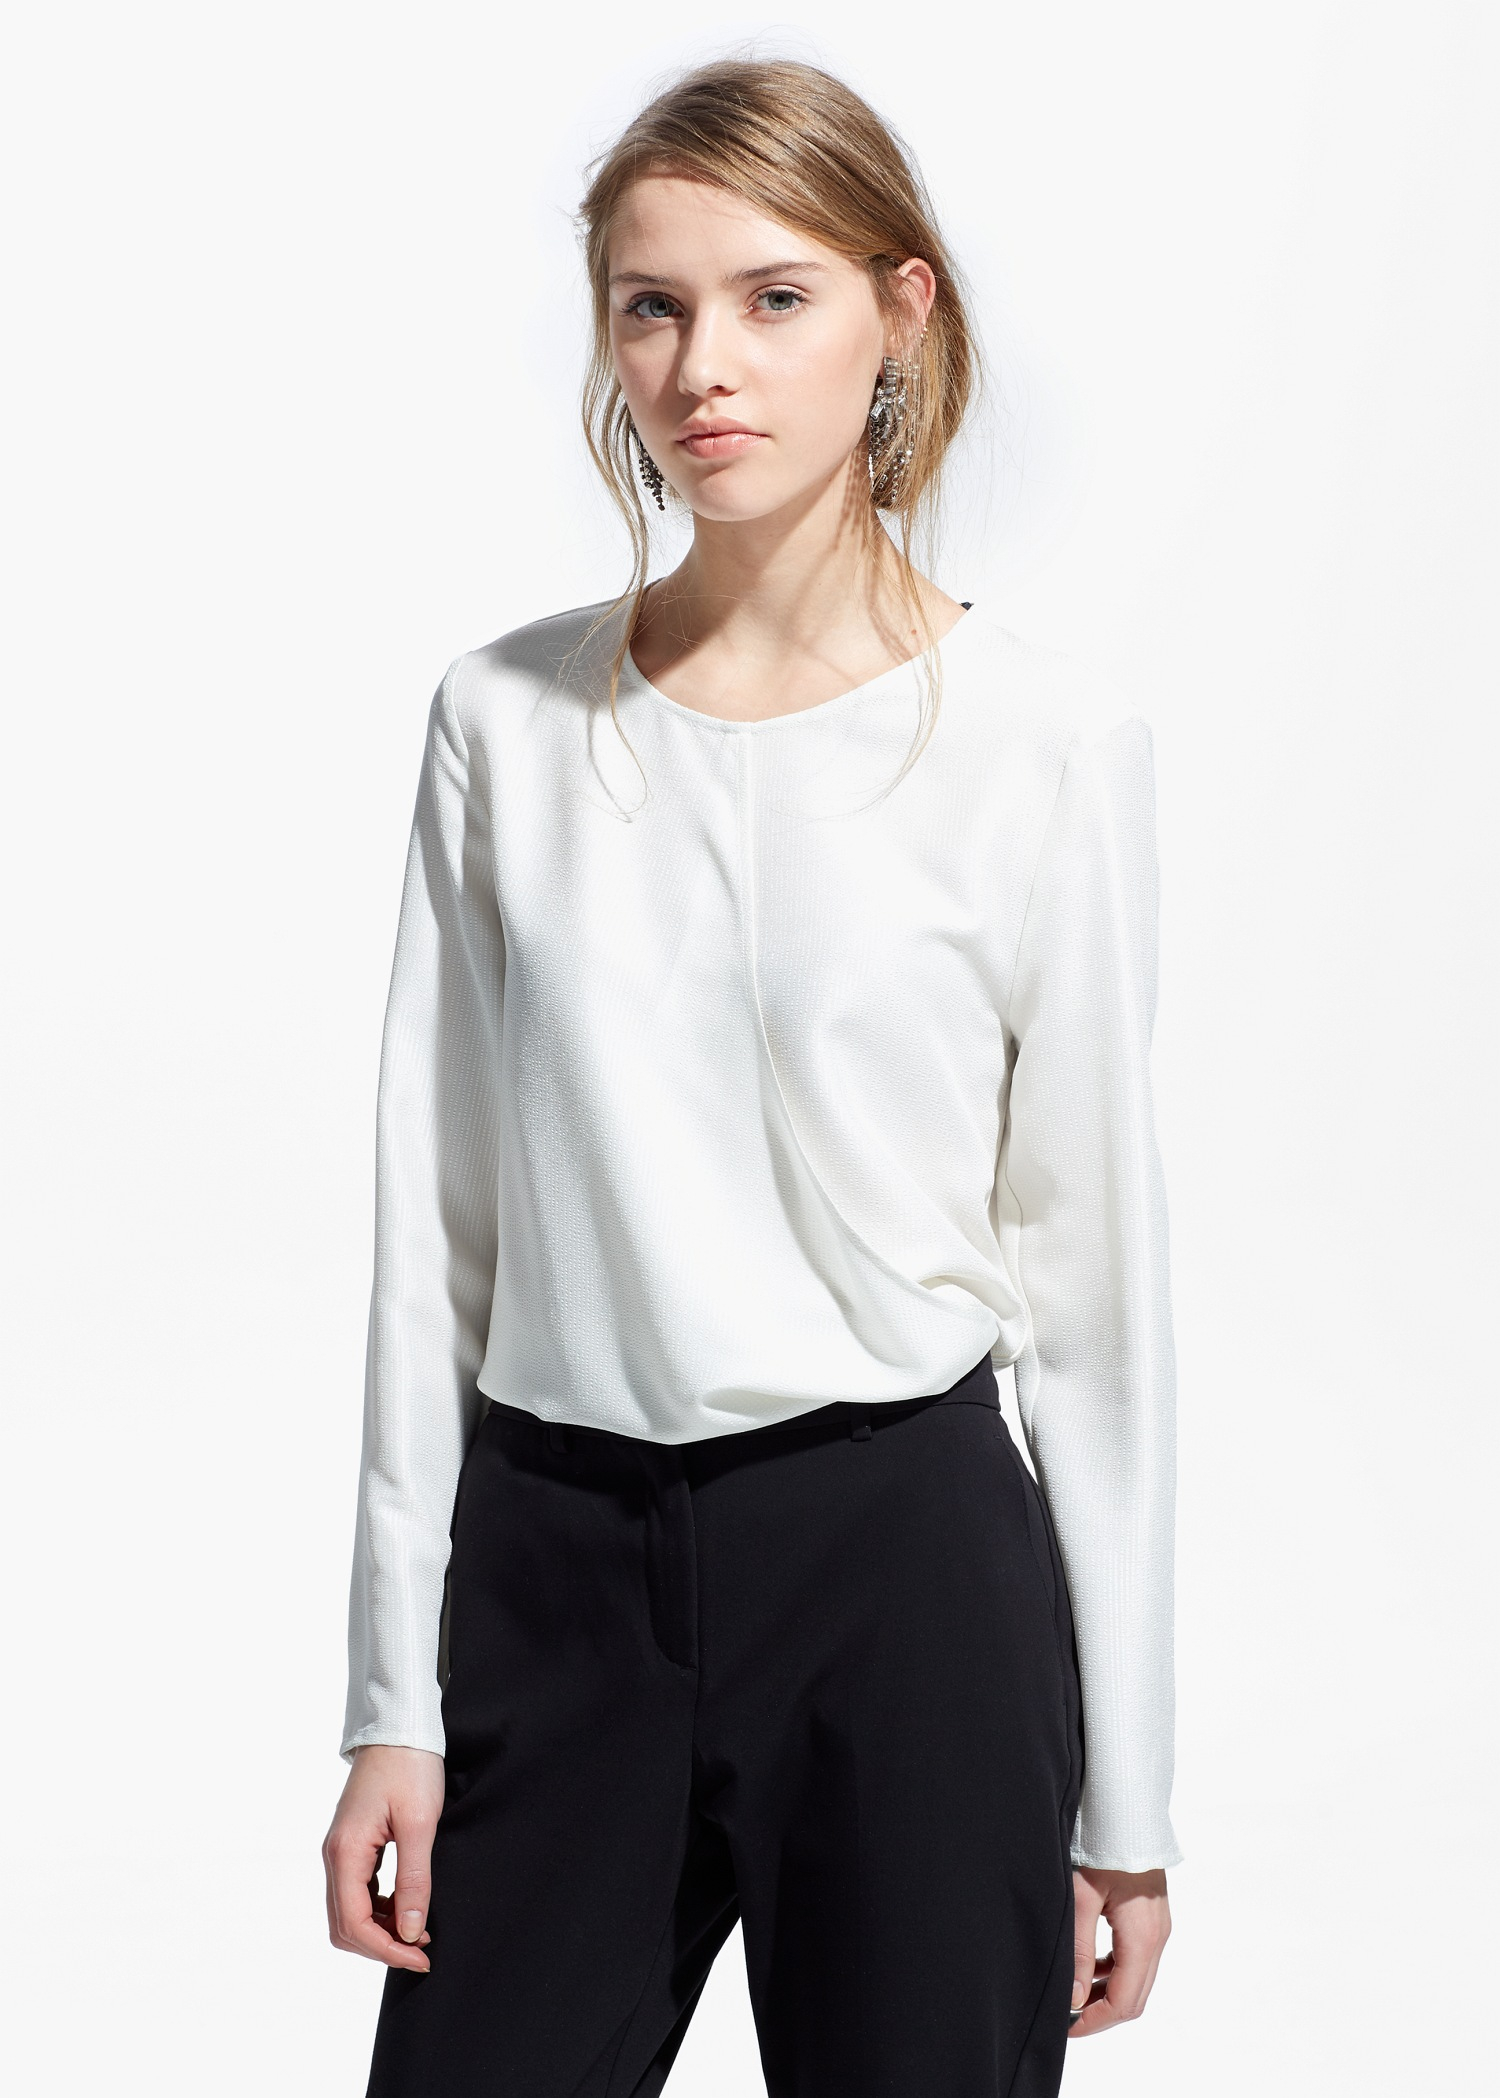 Cheap Blouses And Shirts